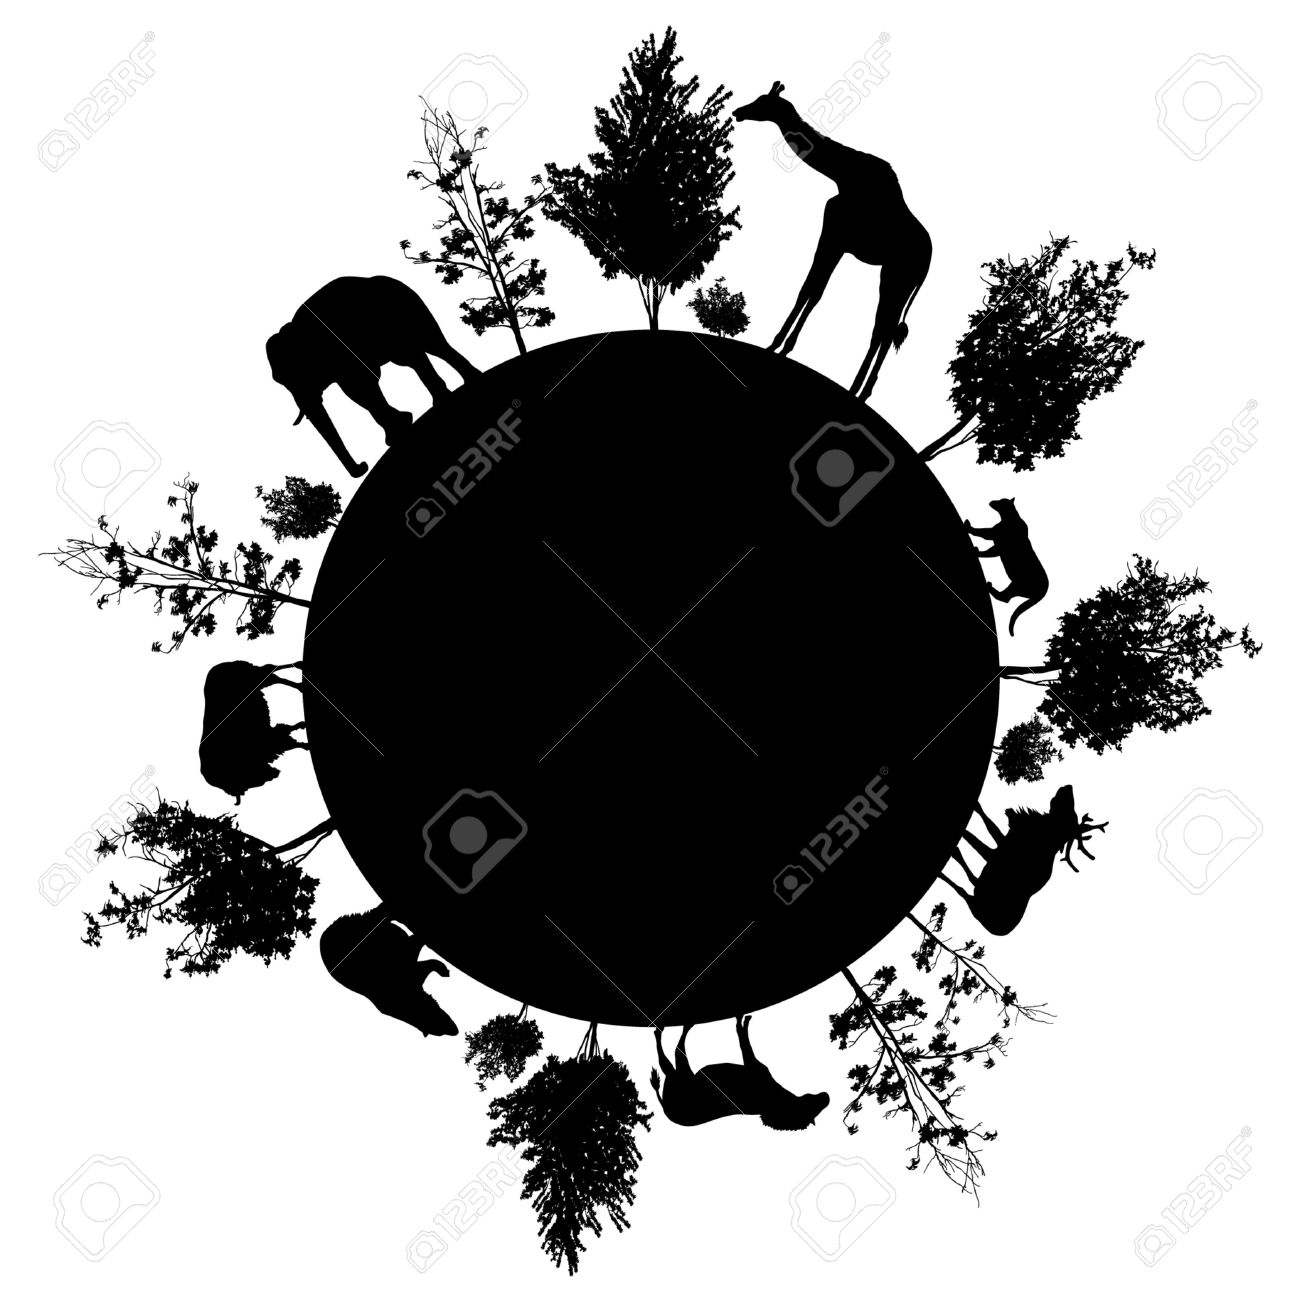 http://previews.123rf.com/images/nataliatoropova/nataliatoropova1410/nataliatoropova141000003/38231639-Silhouette-of-trees-and-wild-animals-walking-around-the-world-Stock-Vector.jpg